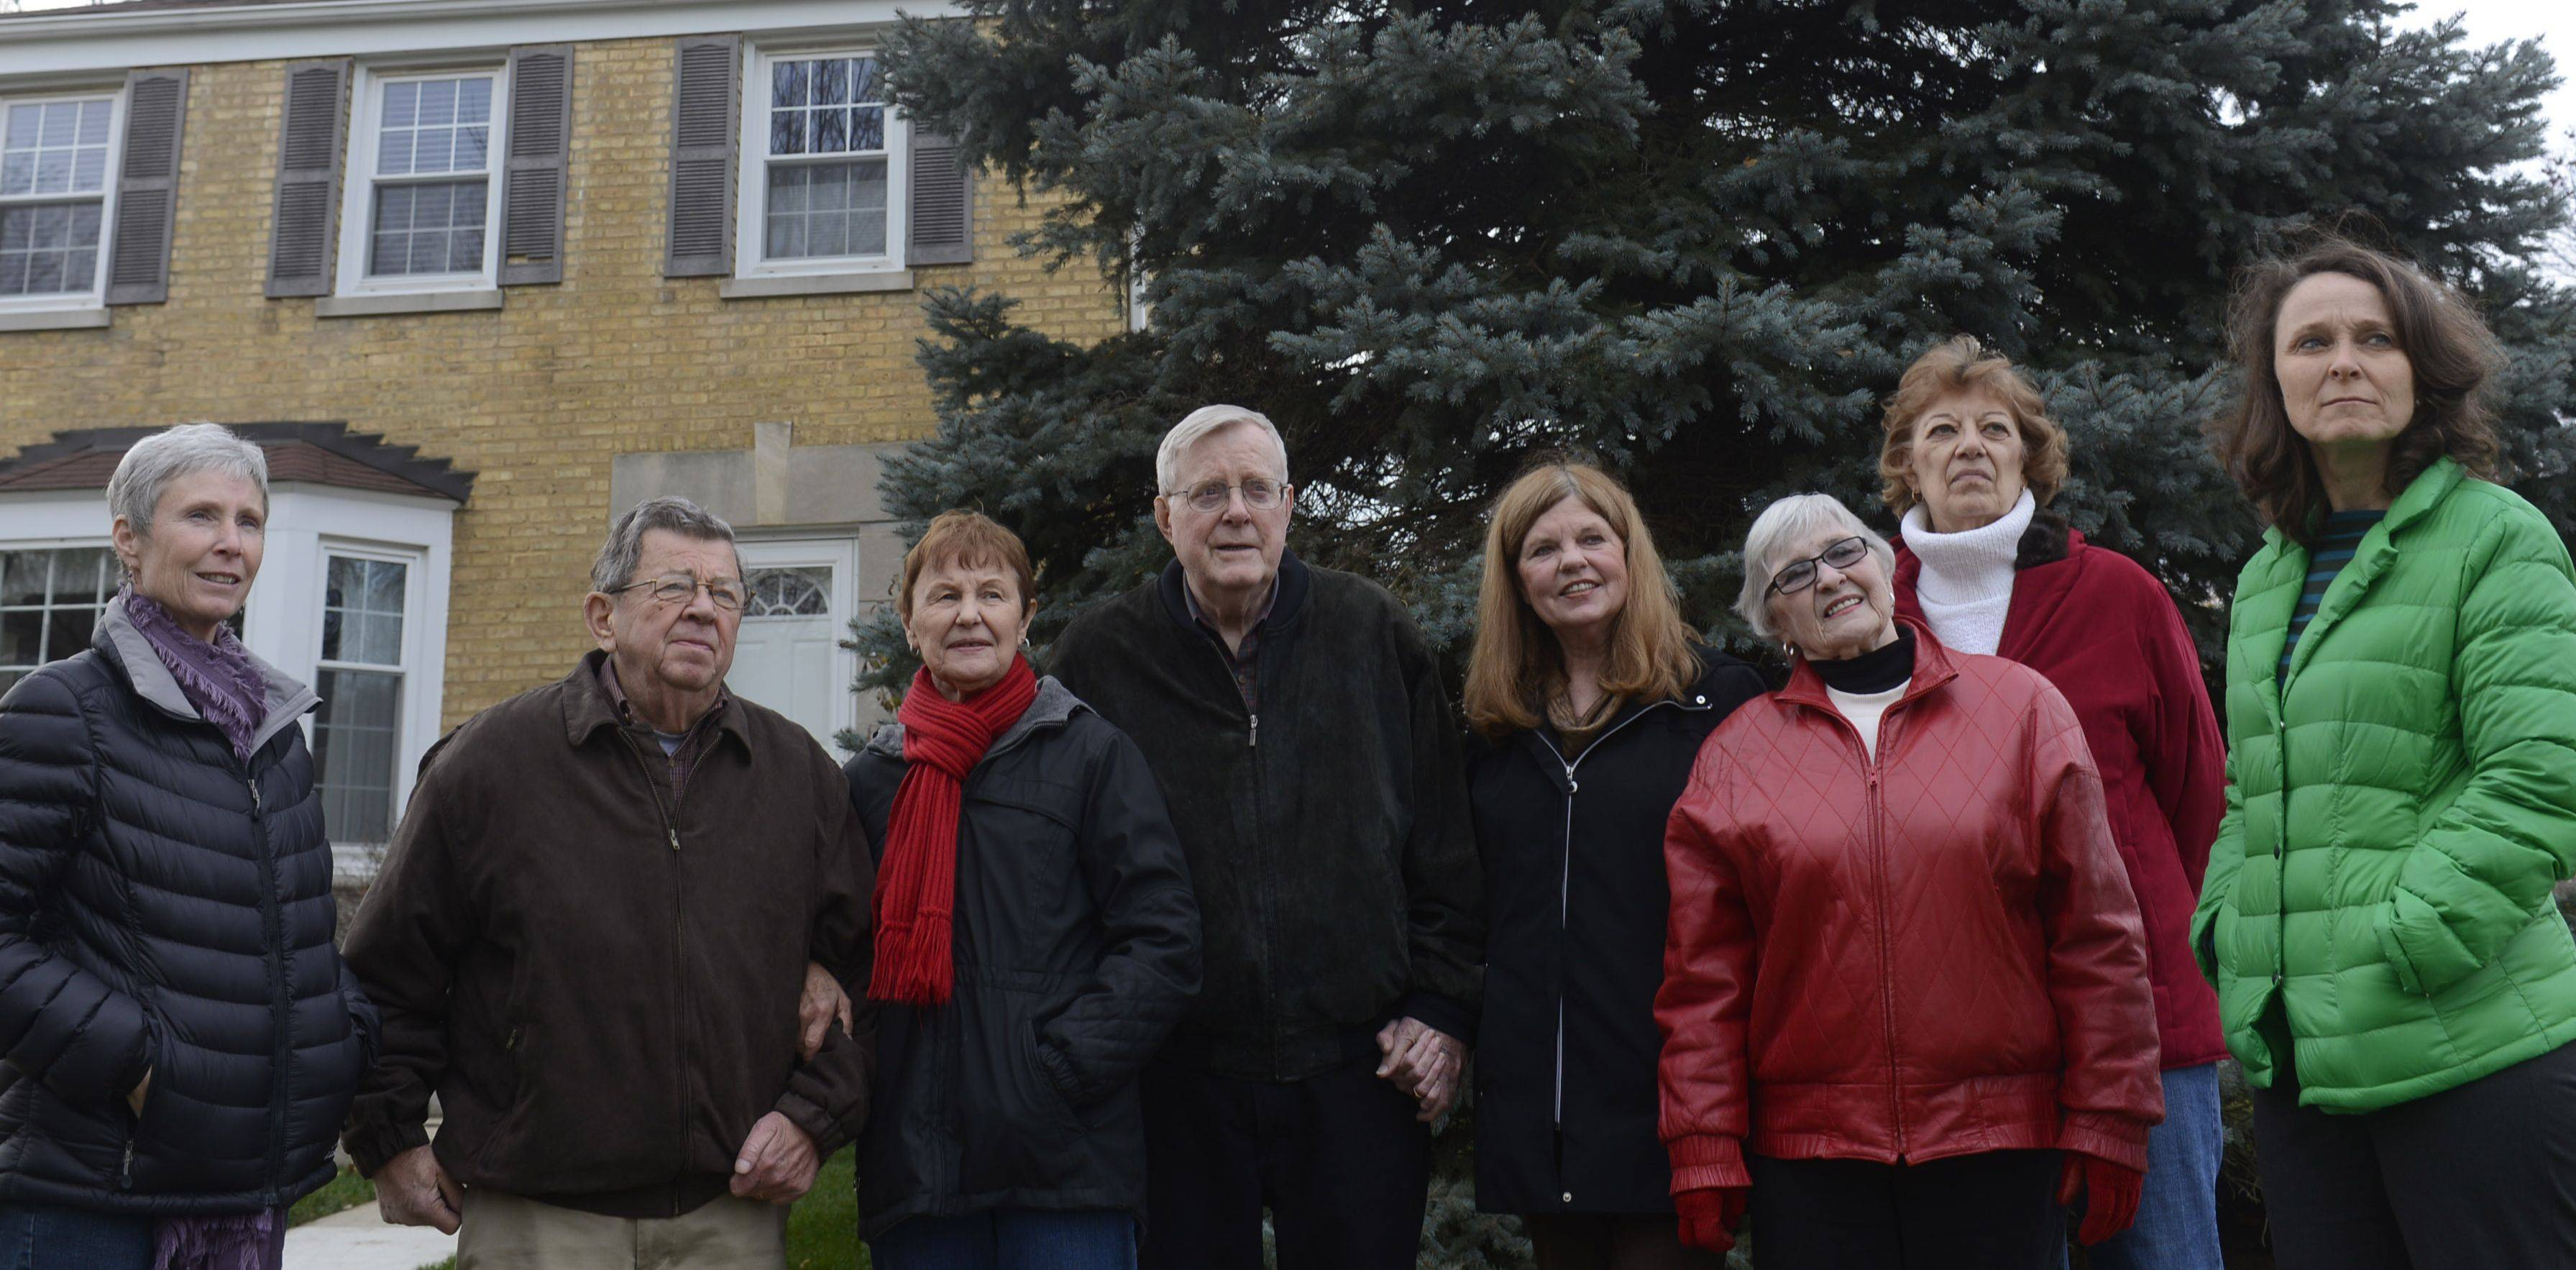 Neighbors, left to right, Sue Lello, Larry and Rosemary Hinkemeyer, Tom and Renae McGovern, Carol Tortorello, Roberta Edmonson and Lorelei McDermott stand in front of a tree planted in memory of Tommy McGovern.